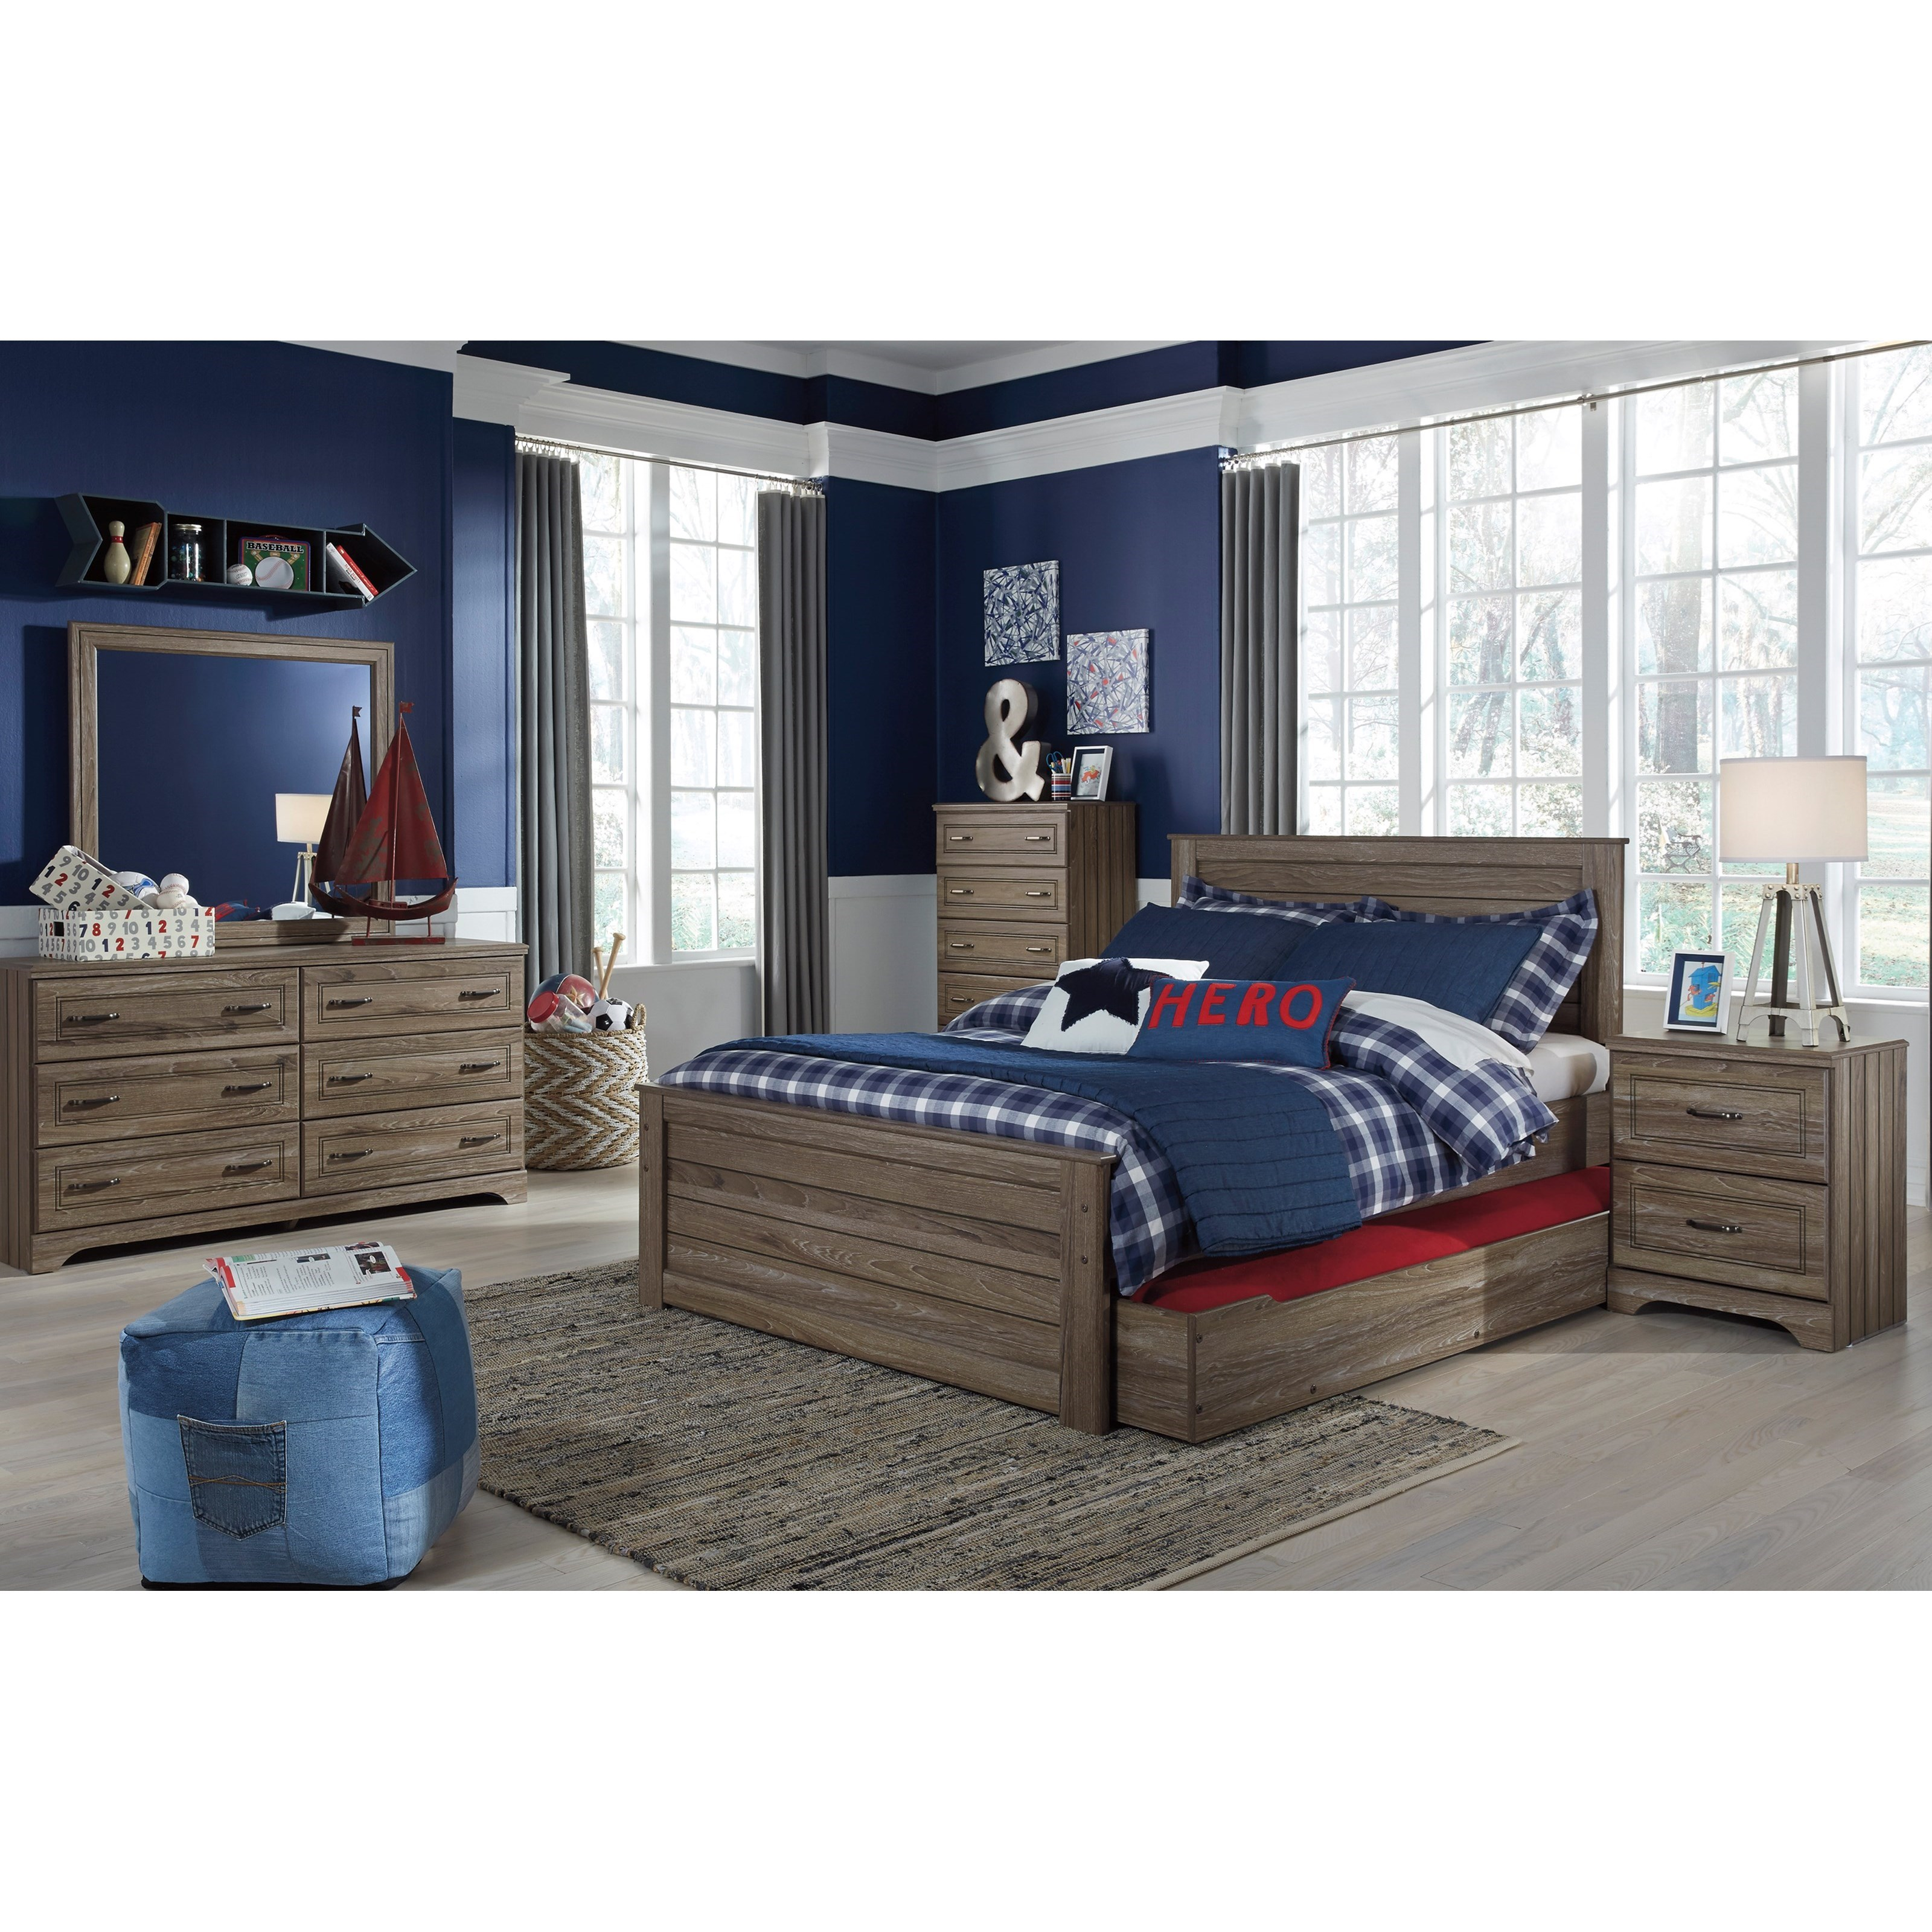 Signature Design By Ashley Javarin Full Bedroom Group Value City Furniture Bedroom Groups